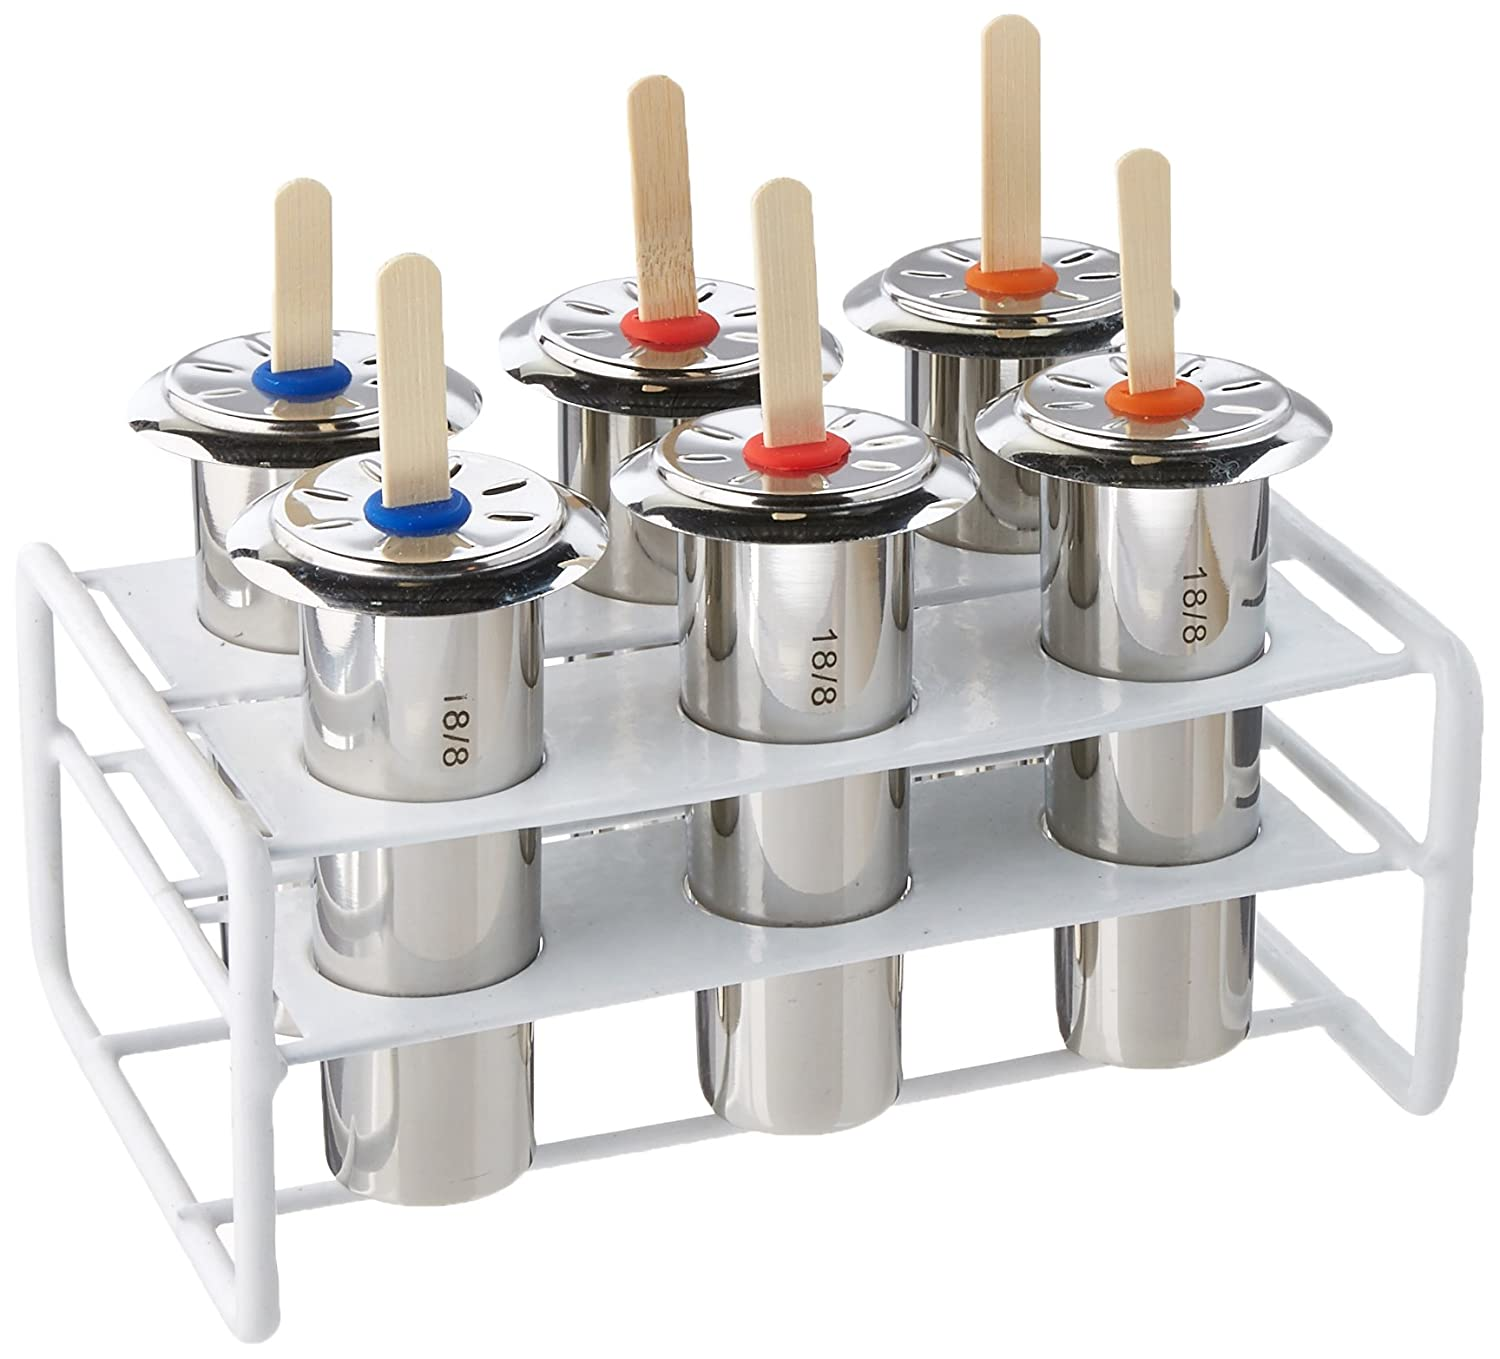 Ice Lolly Mold Stainless Steel Popsicle 6 Piece Mold and Rack Set Popsicle Mold